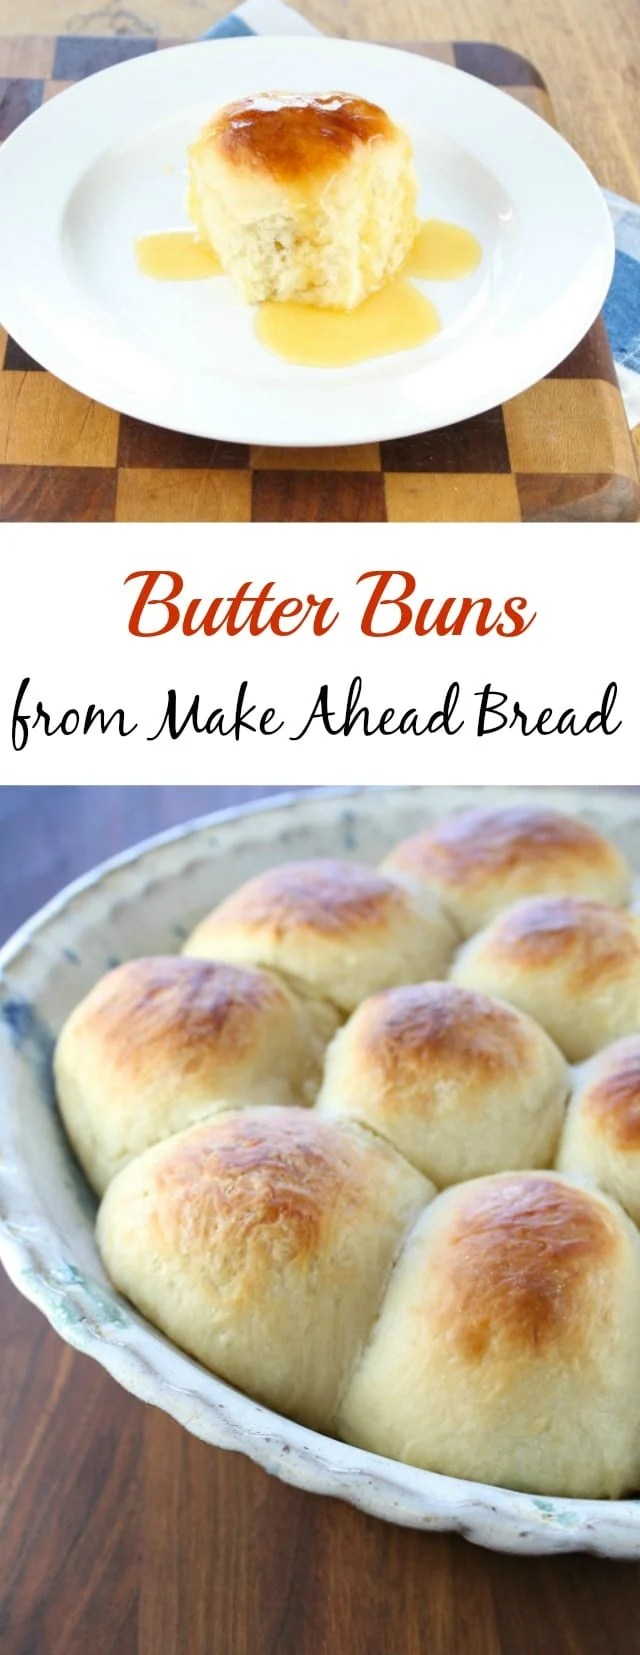 Butter Buns from Make Ahead Bread